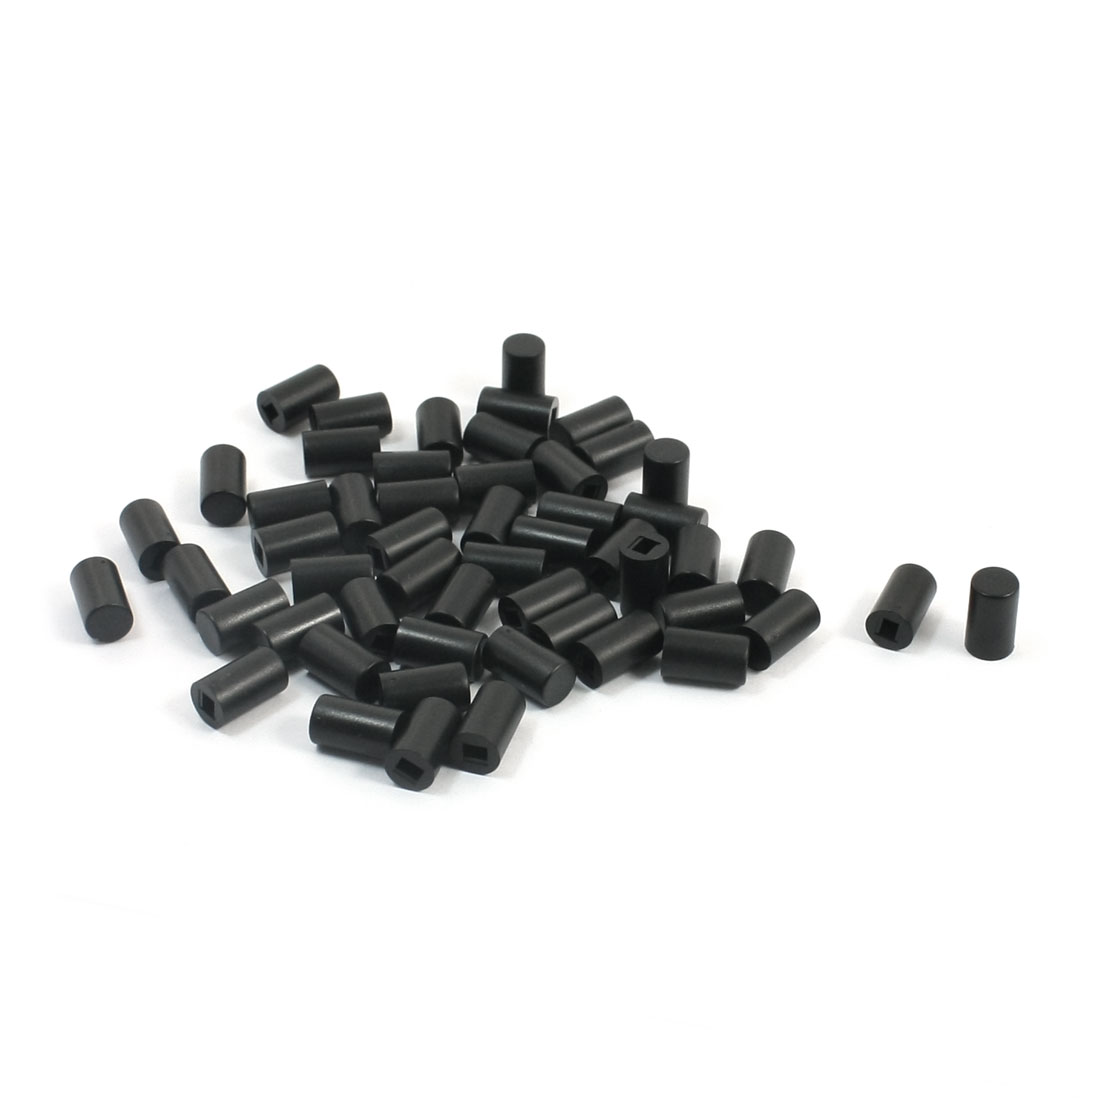 55 Pcs Round Micro Tactile Pushbutton Caps Keycaps Covers Protector Black 6x10mm